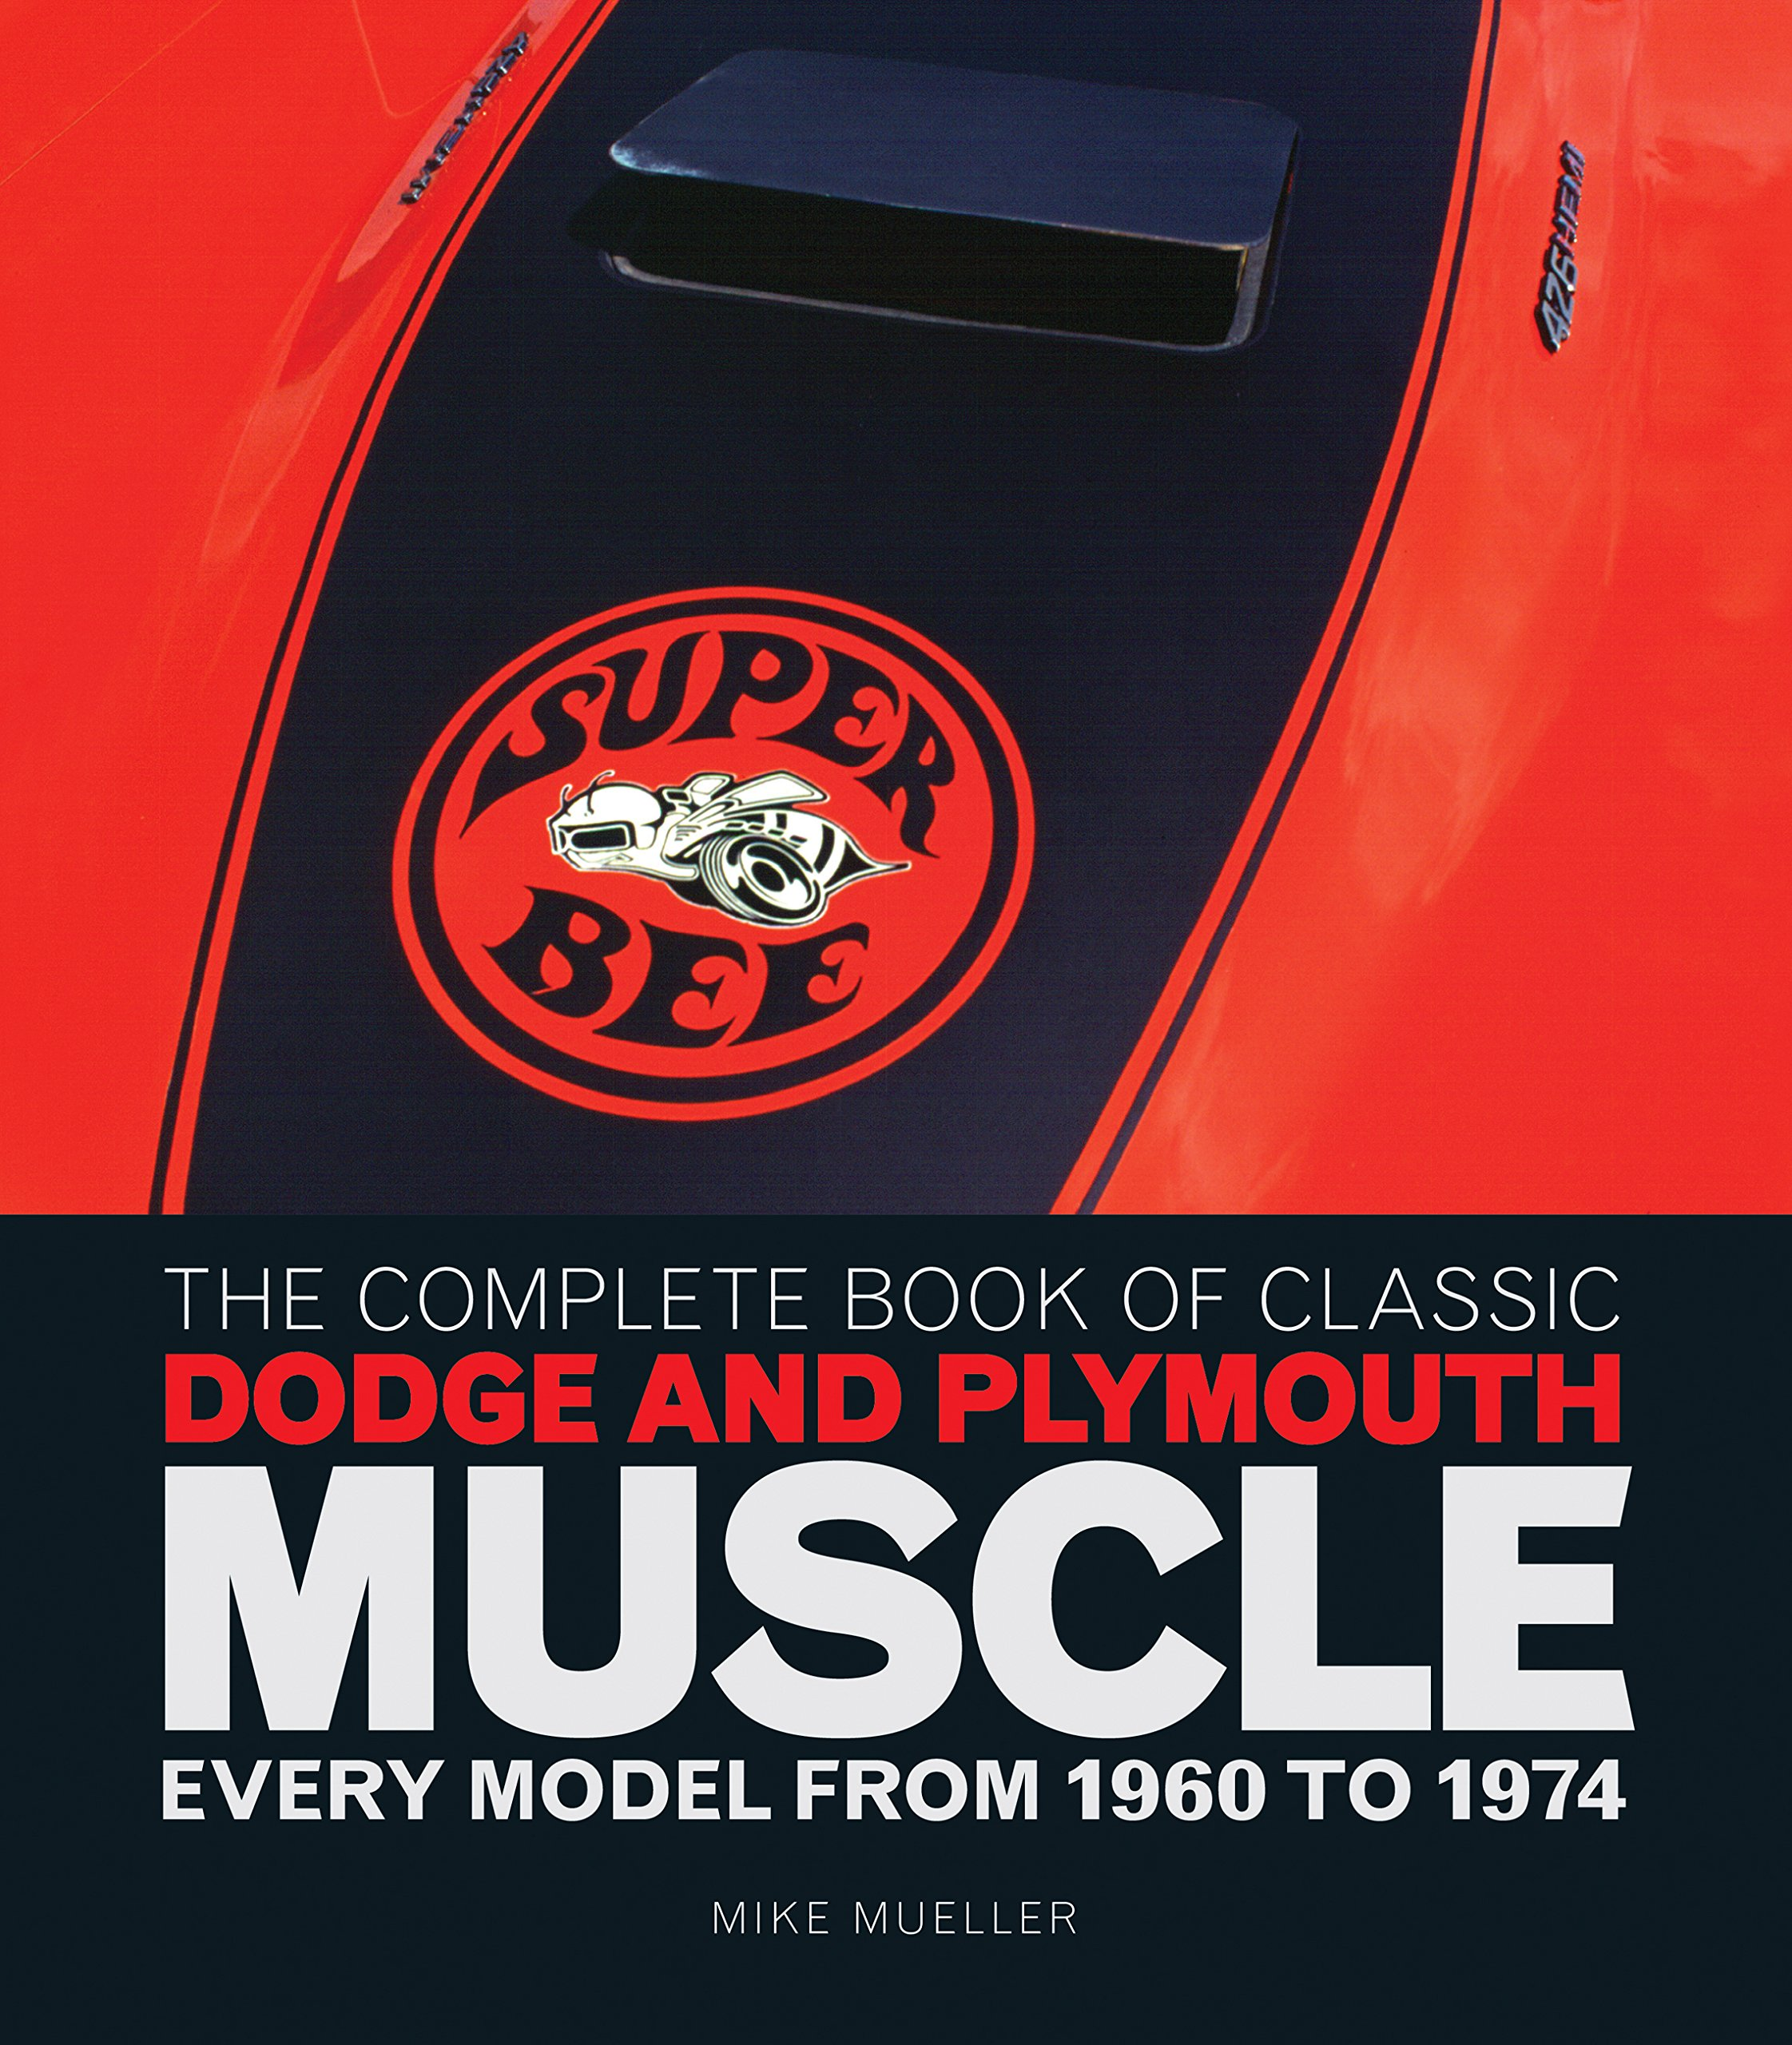 The Complete Book of Classic Dodge and Plymouth Muscle: Every Model from 1960 to 1974 (Complete Book Series) by Brand: Motorbooks (Image #2)